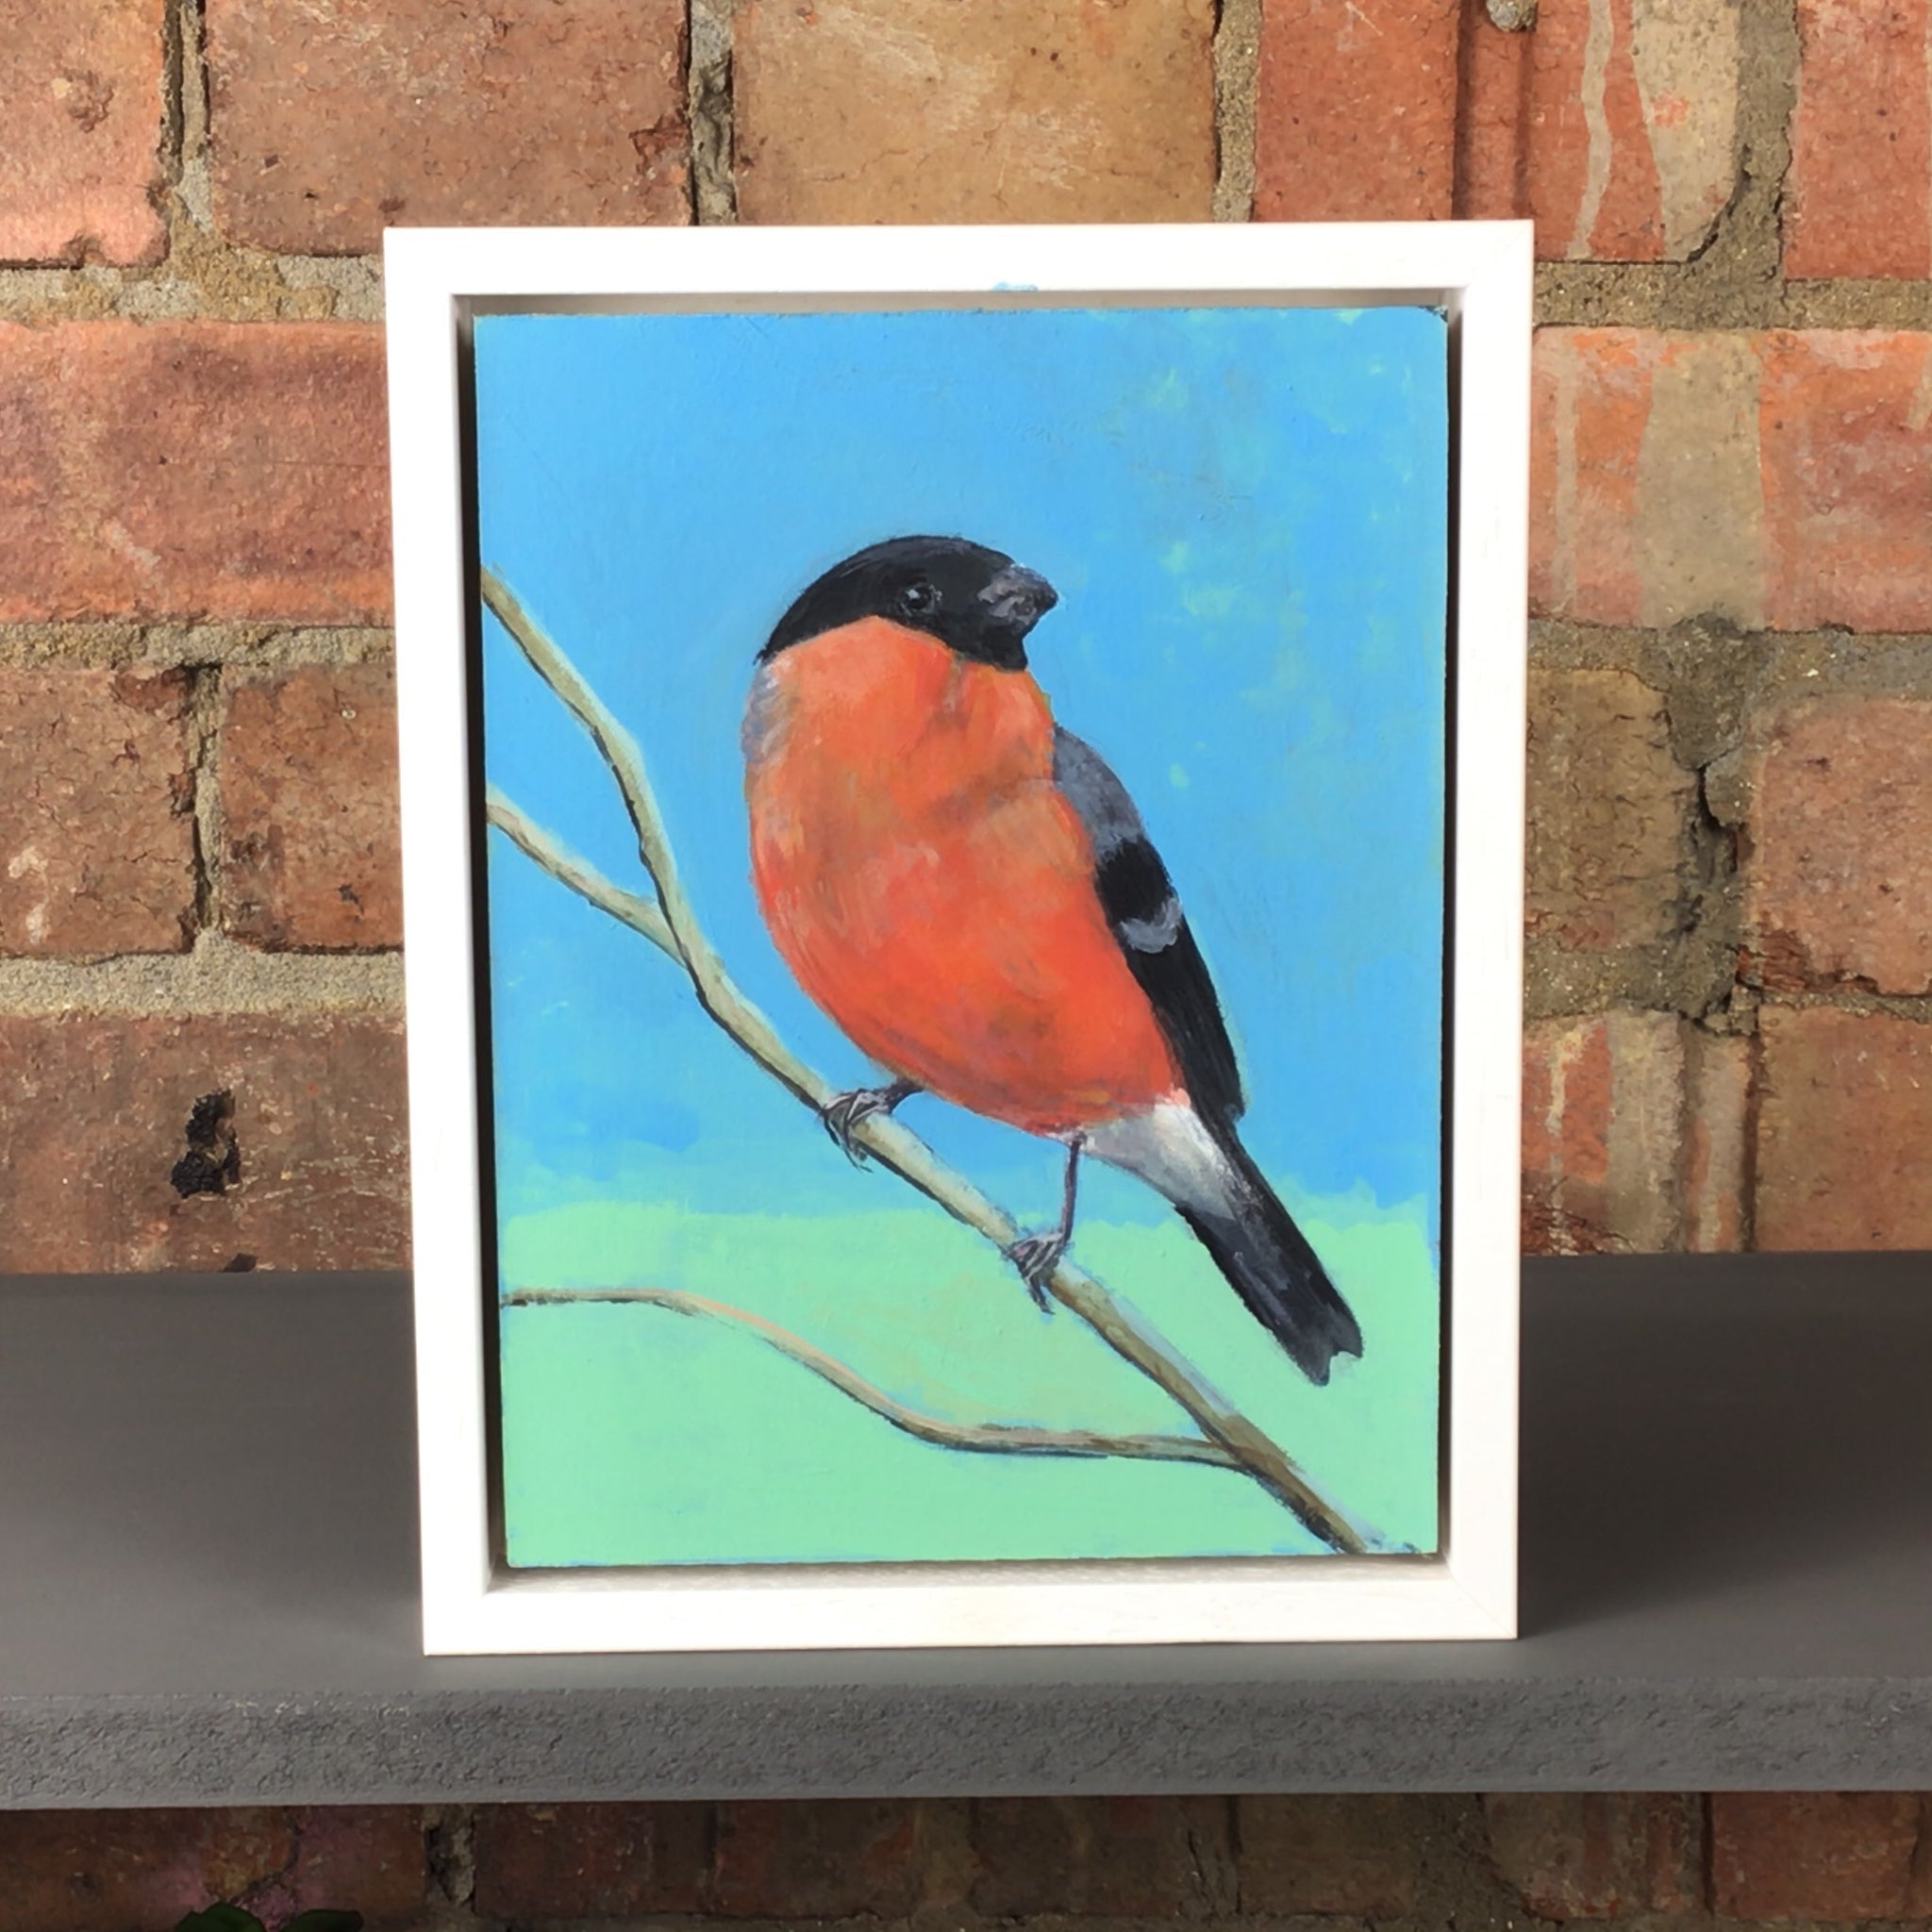 Bullfinch Sold On Behalf of Carys Evans